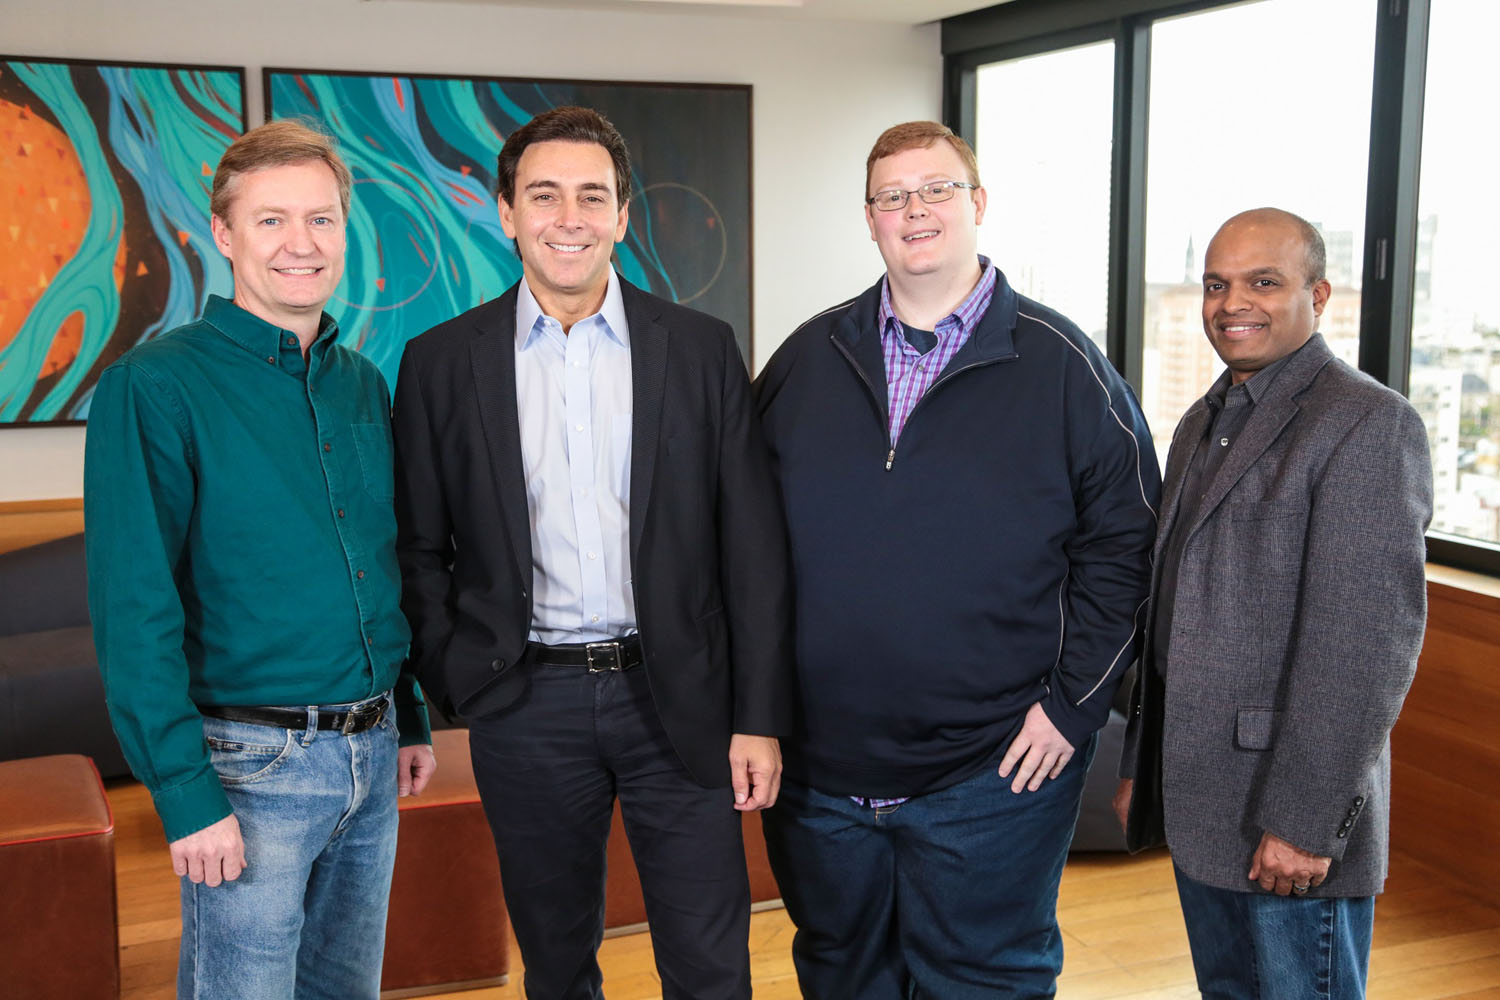 Peter-Rander-Argo-AI-COO-Mark-Fields-Ford-president-and-CEO-Bryan-Salesky-Argo-AI-CEO-and-Raj-Nair-Ford-EVP.jpg